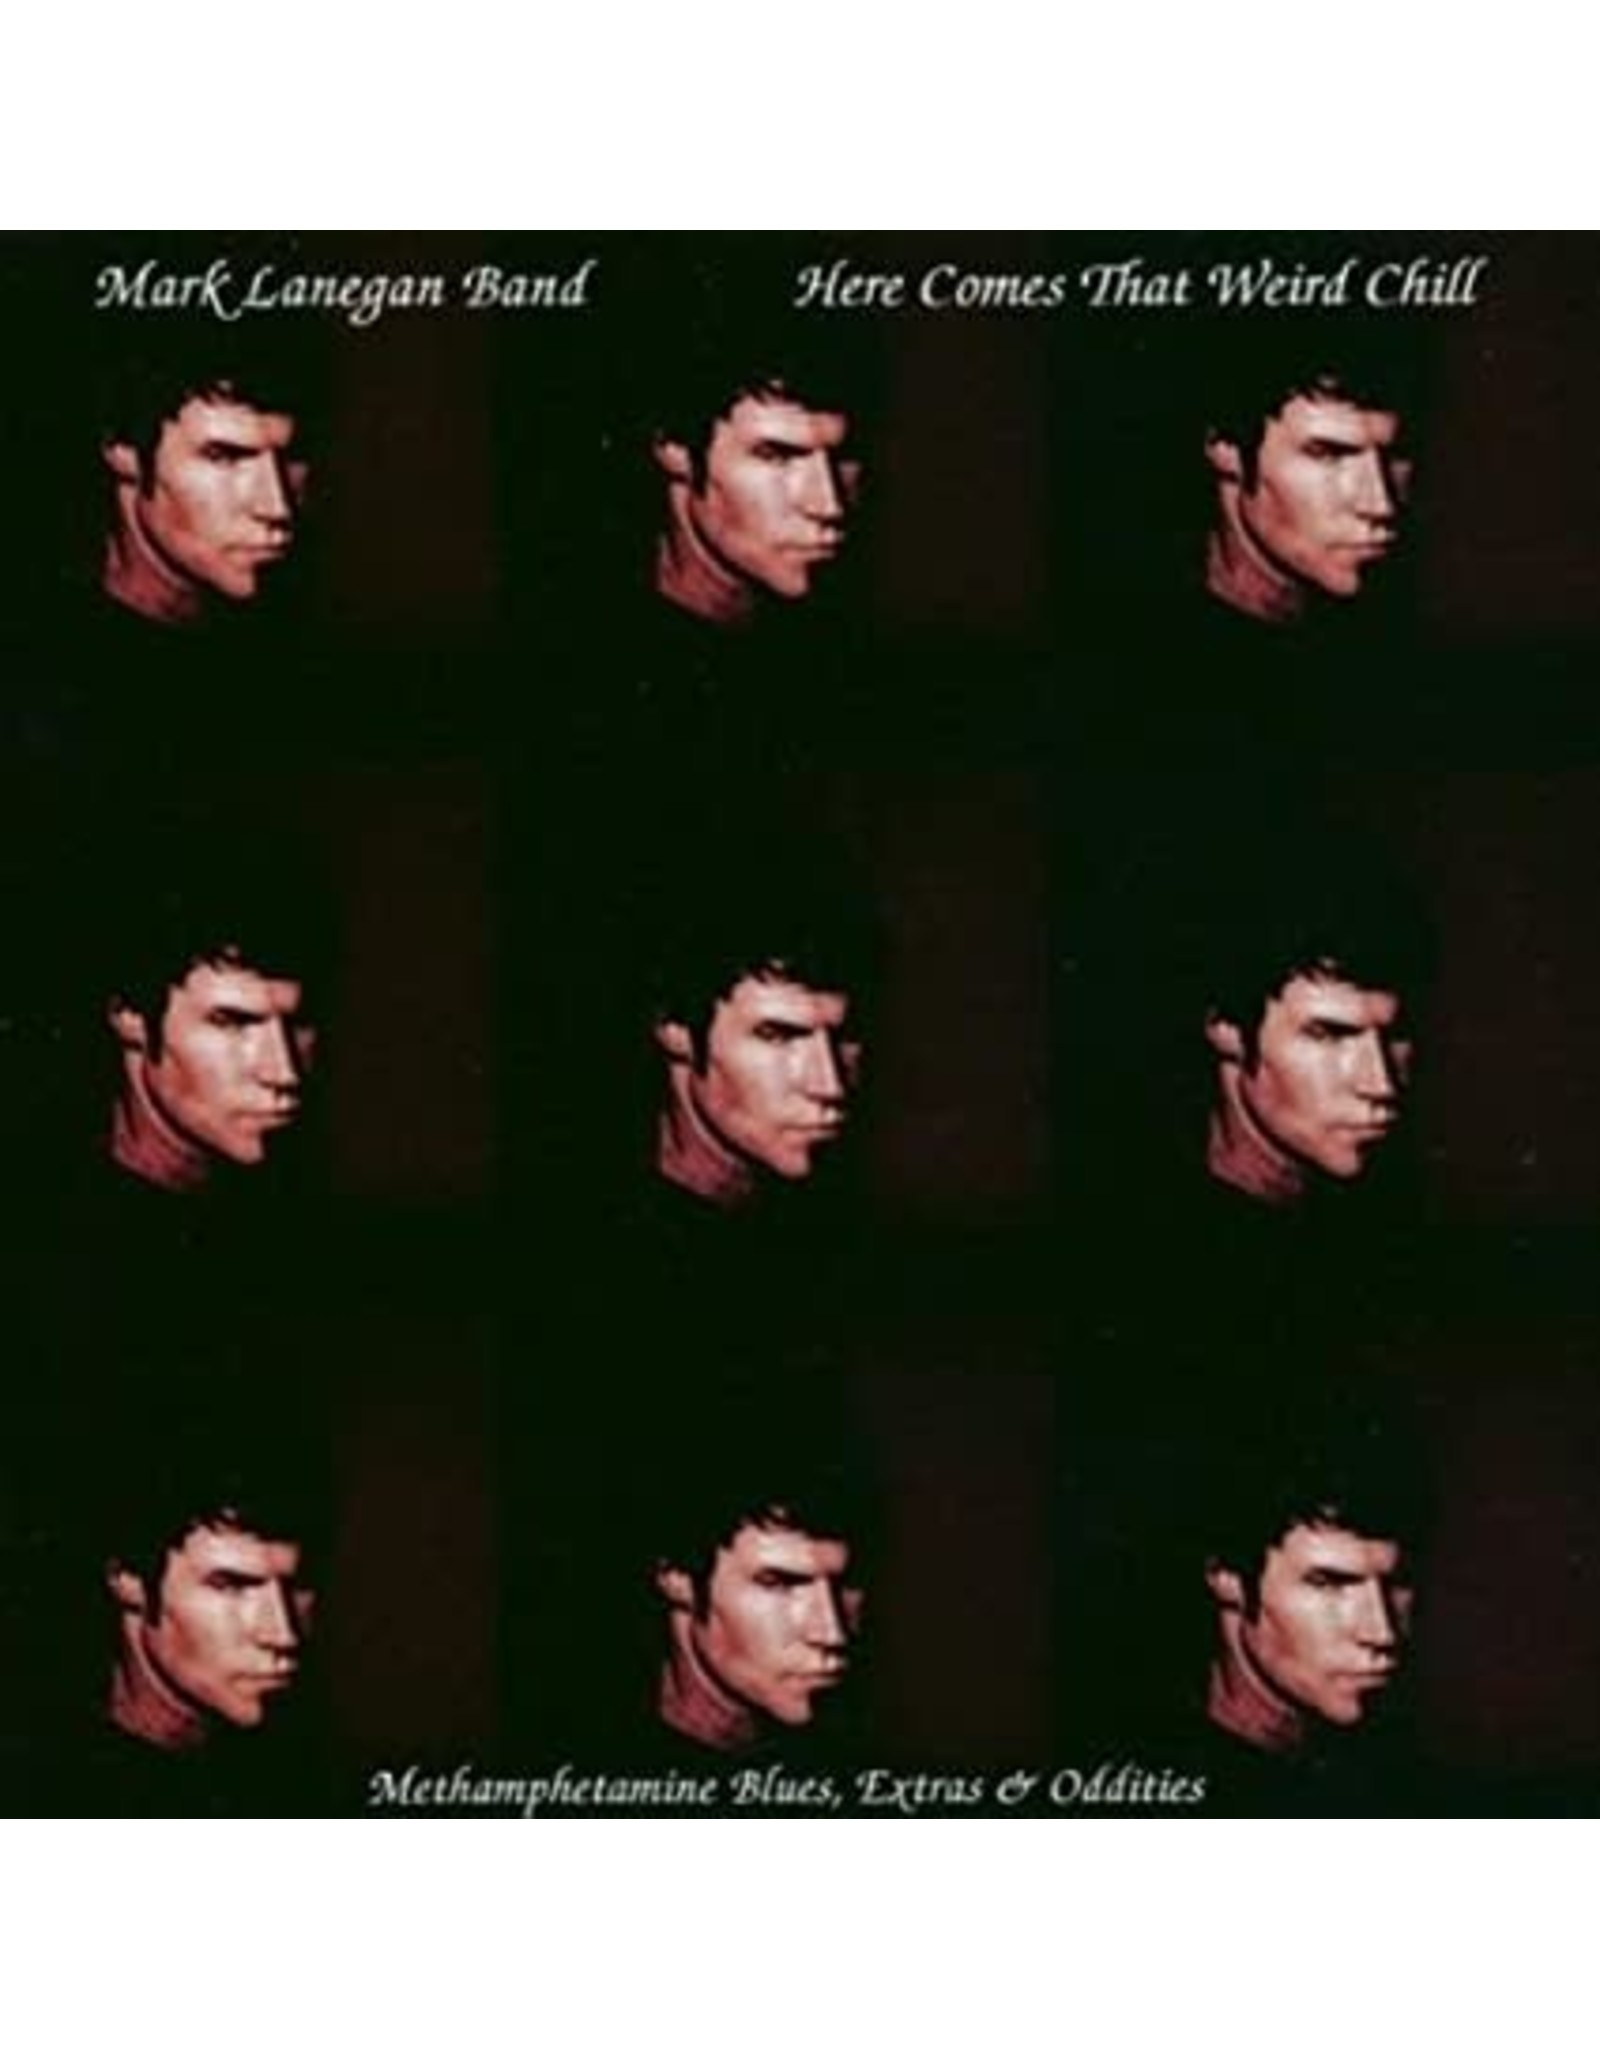 Lanegan, Mark Band - Here Comes That Weird Chill LP (RSD '21 Exclusive)